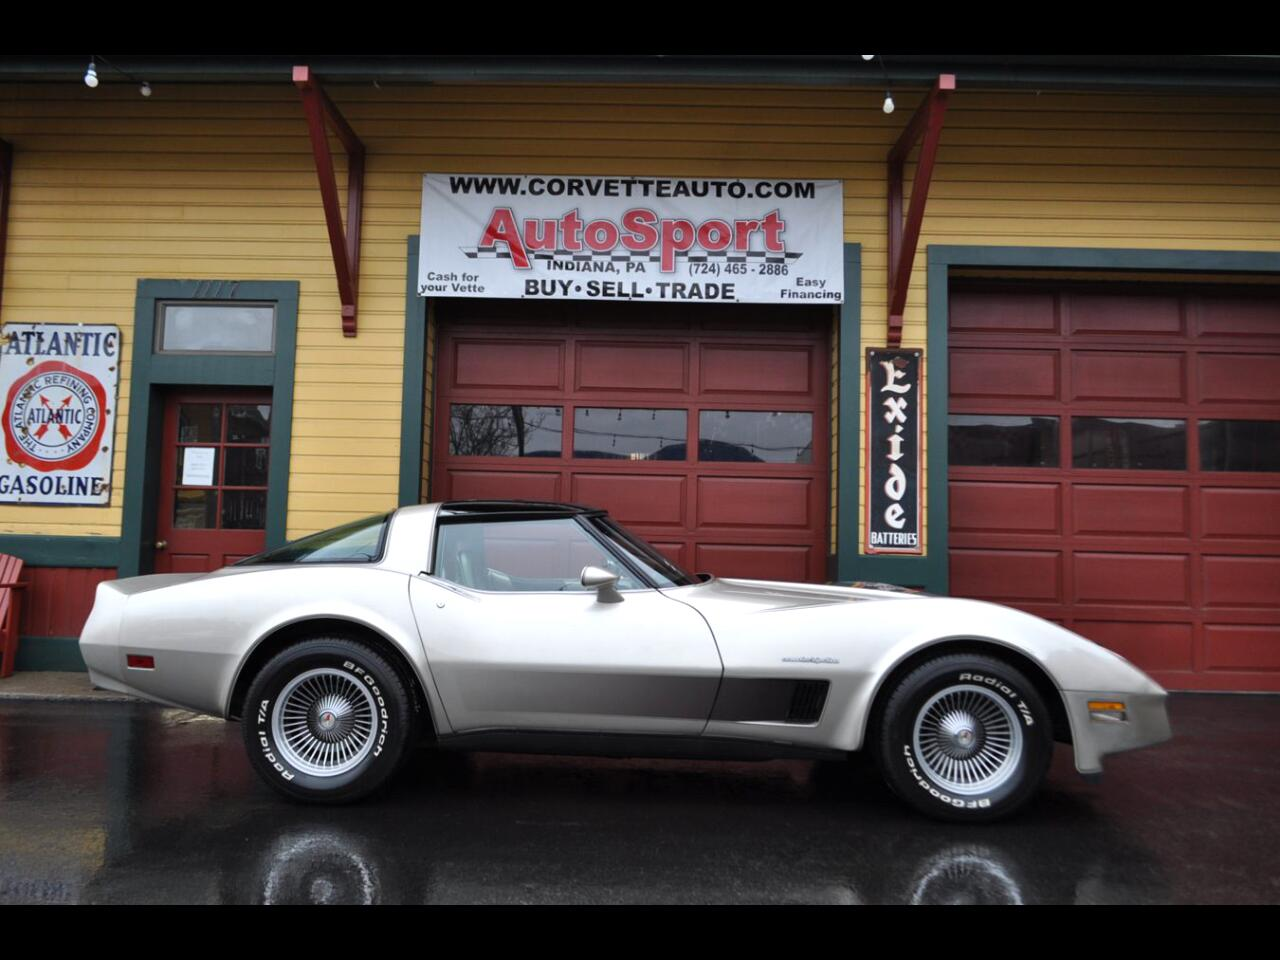 1982 Chevrolet Corvette 1982 Collector's Edition Org 5k Miles! Documented!